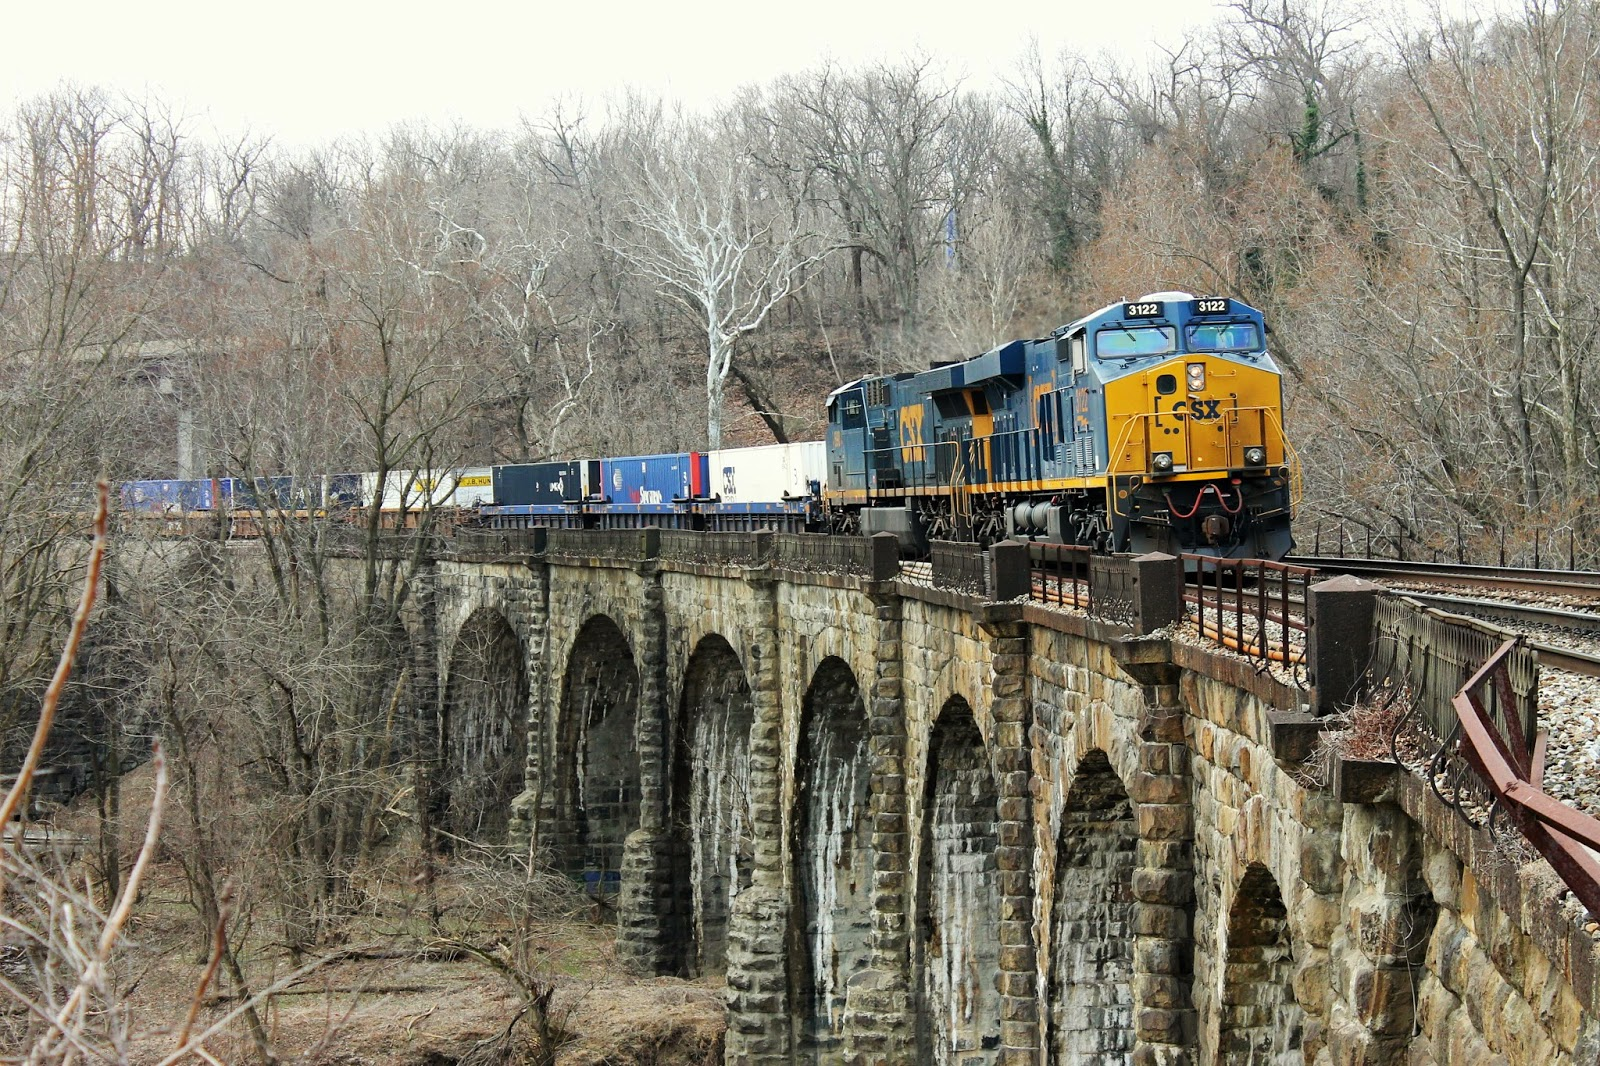 The viaduct is still able to support the massive CSX locomotives.